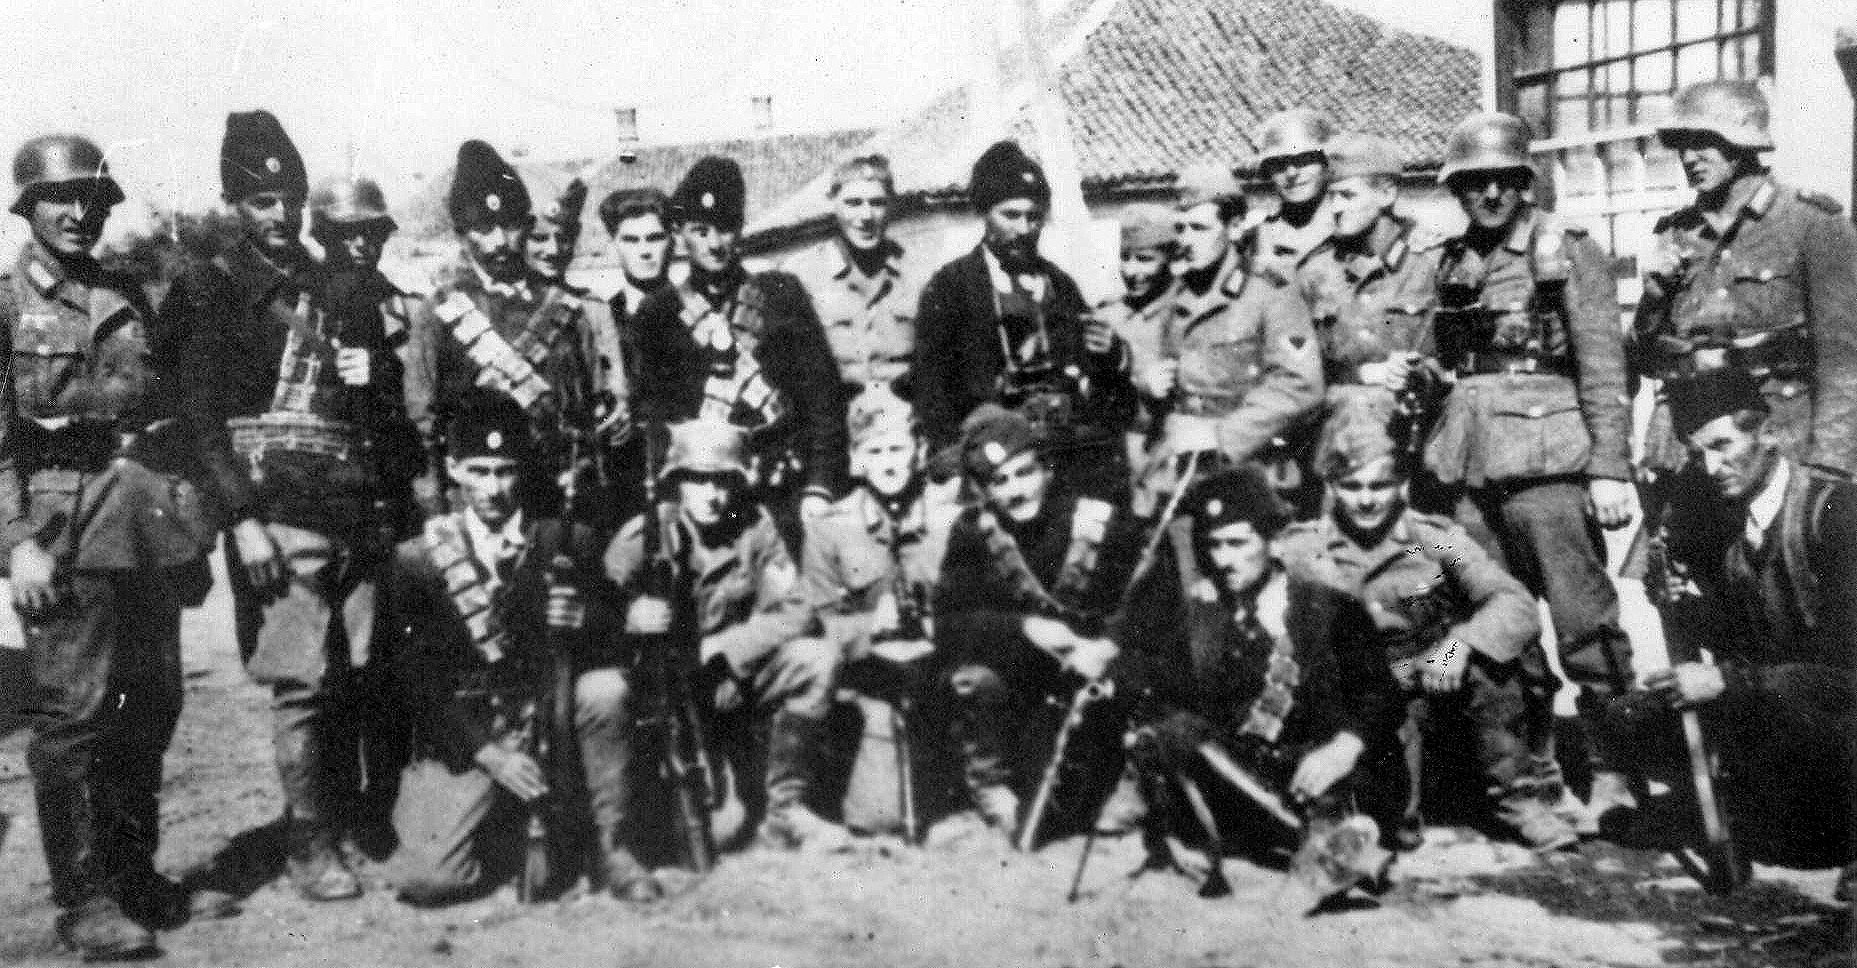 Clash at Poljana – The WW2 Battle That Was Fought A Week After VE Day